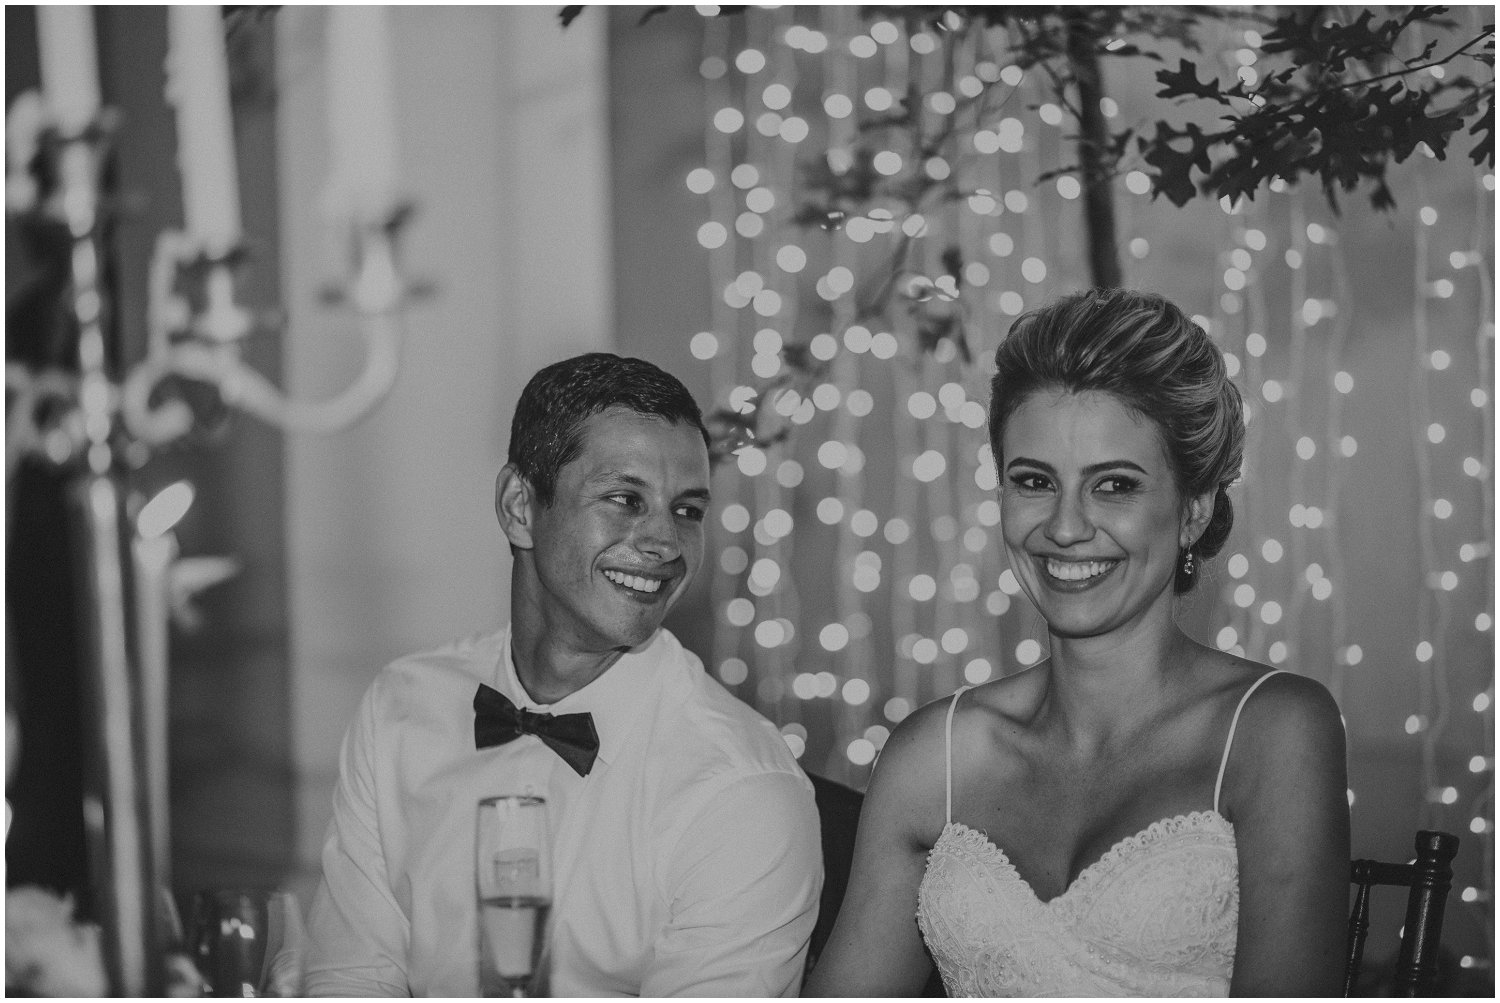 Top Artistic Creative Documentary Wedding Photographer Cape Town South Africa Rue Kruger_0163.jpg